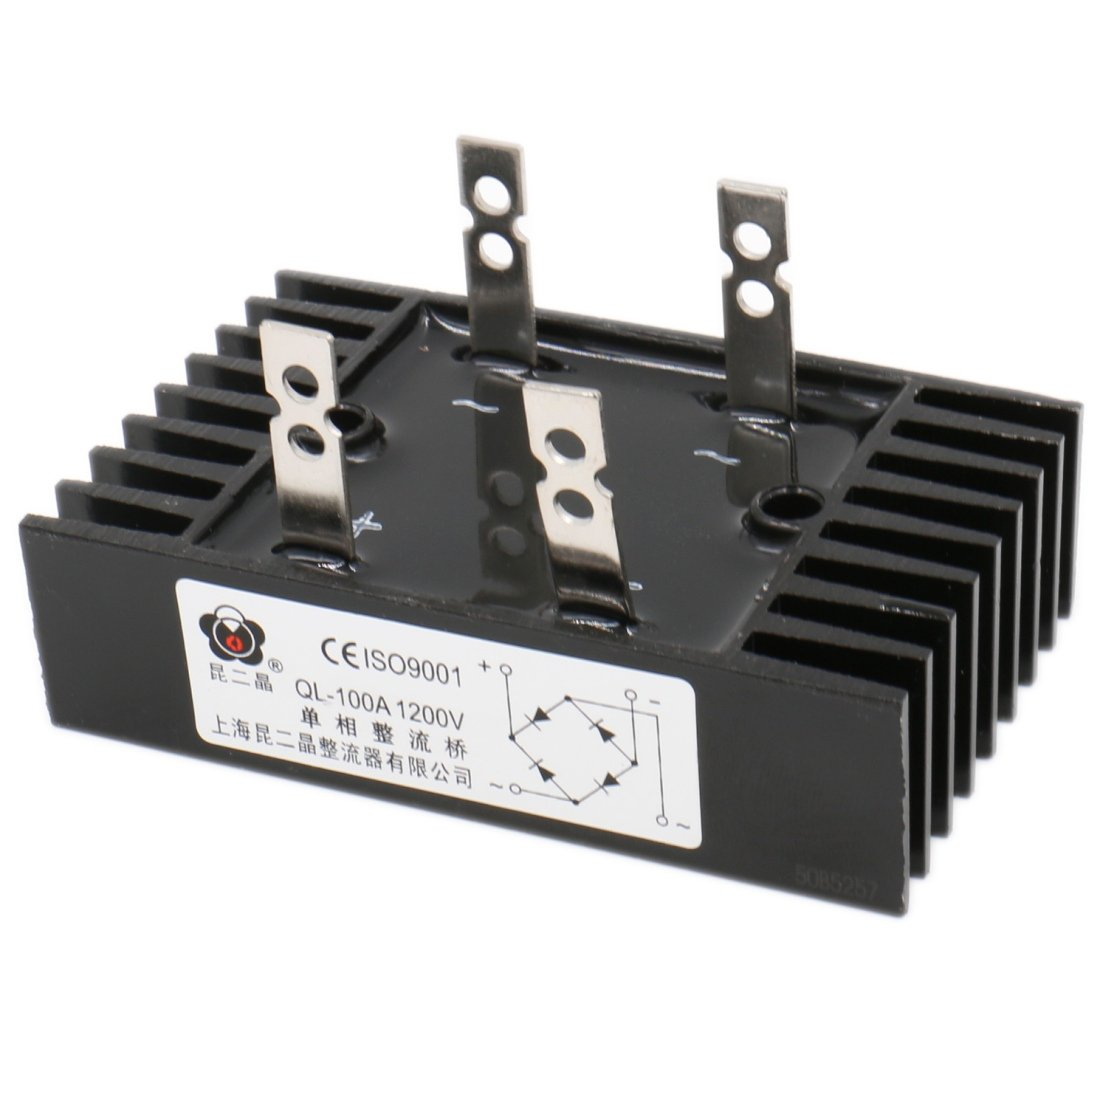 Baomain 100a Amp 1200v Volt Diode Bridge Rectifier Metal Ql100a Let39s Design A Circuit With Halfbridge Converter Click On Image To Radio Frequency Transceivers Industrial Scientific